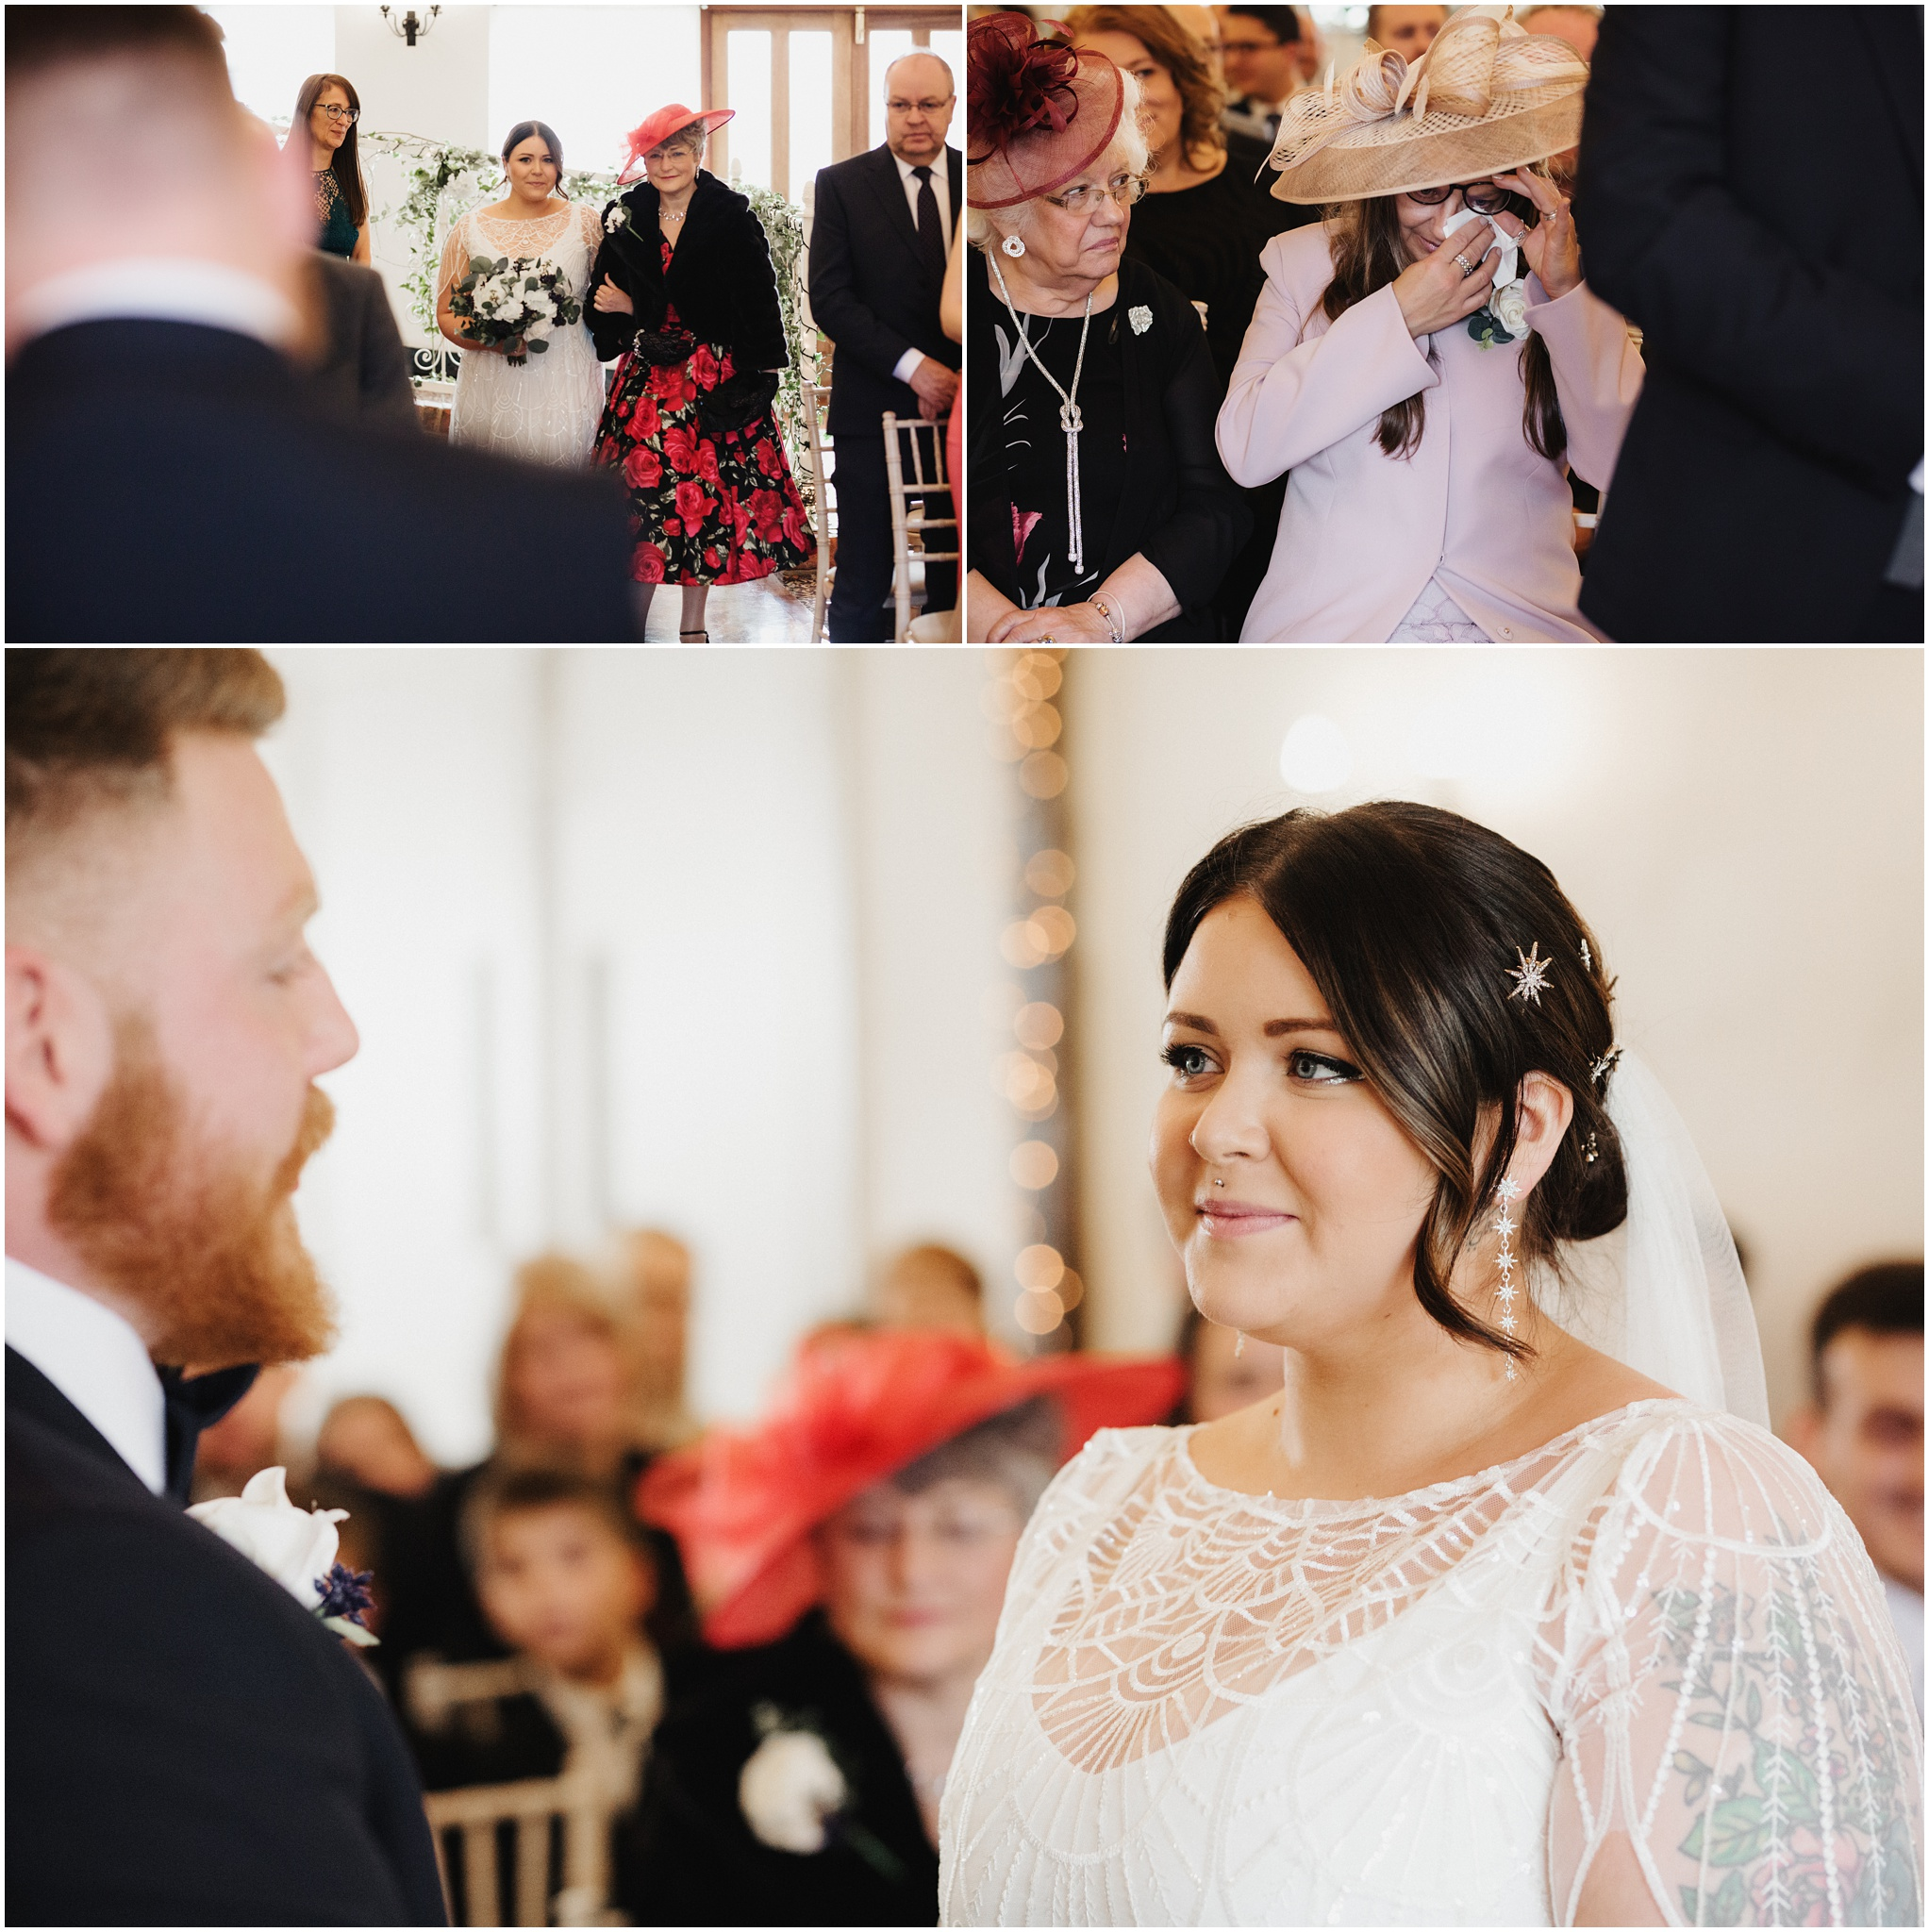 The bride walks down the aisle with her mum and the grooms mum gets emotional when they see each other for the first time